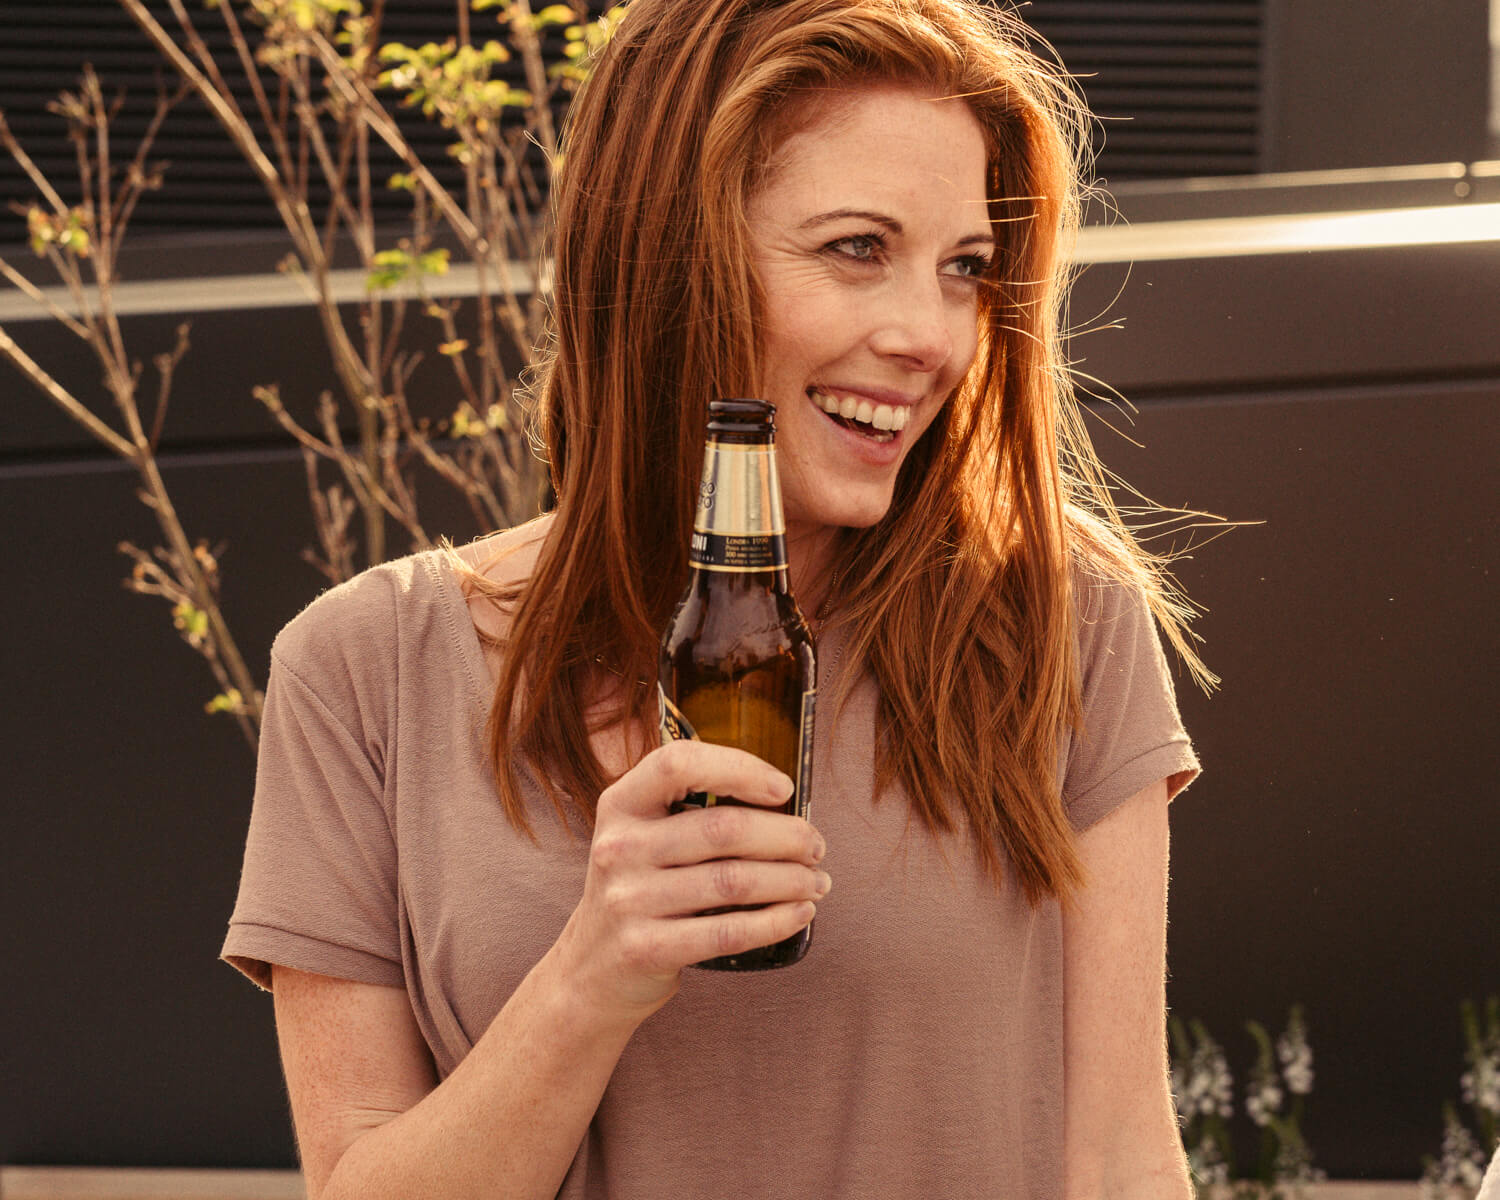 Red haired woman, laughing by lifestyle photographer Tim Cole